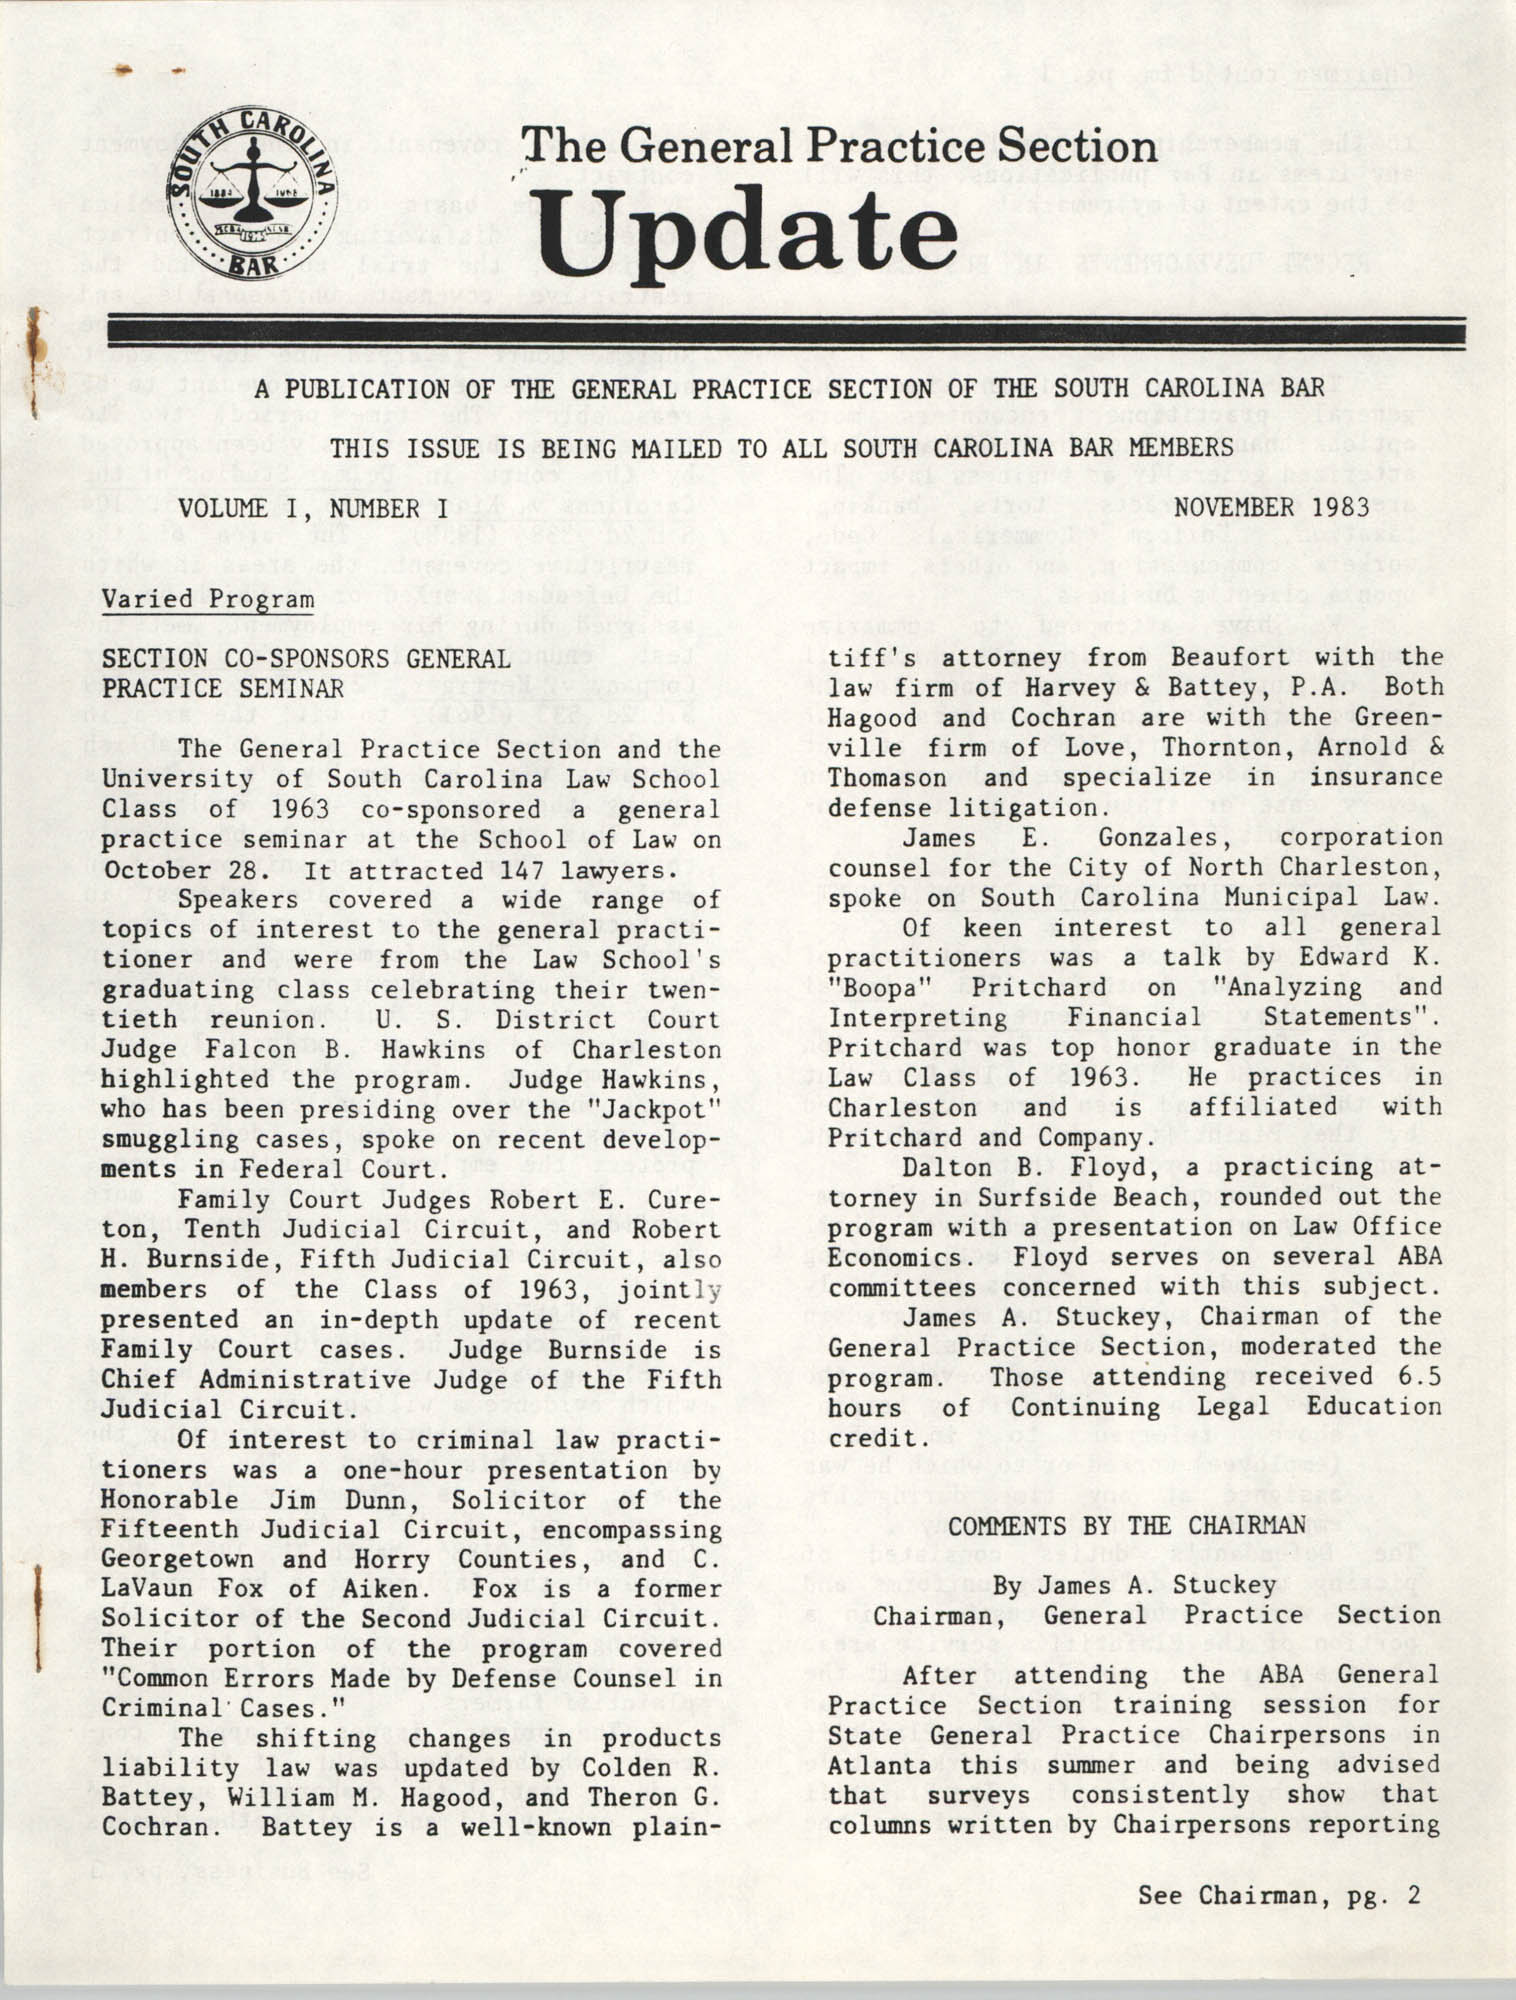 The General Practice Section Update, Vol. 1 No. 1, South Carolina Bar, November 1983